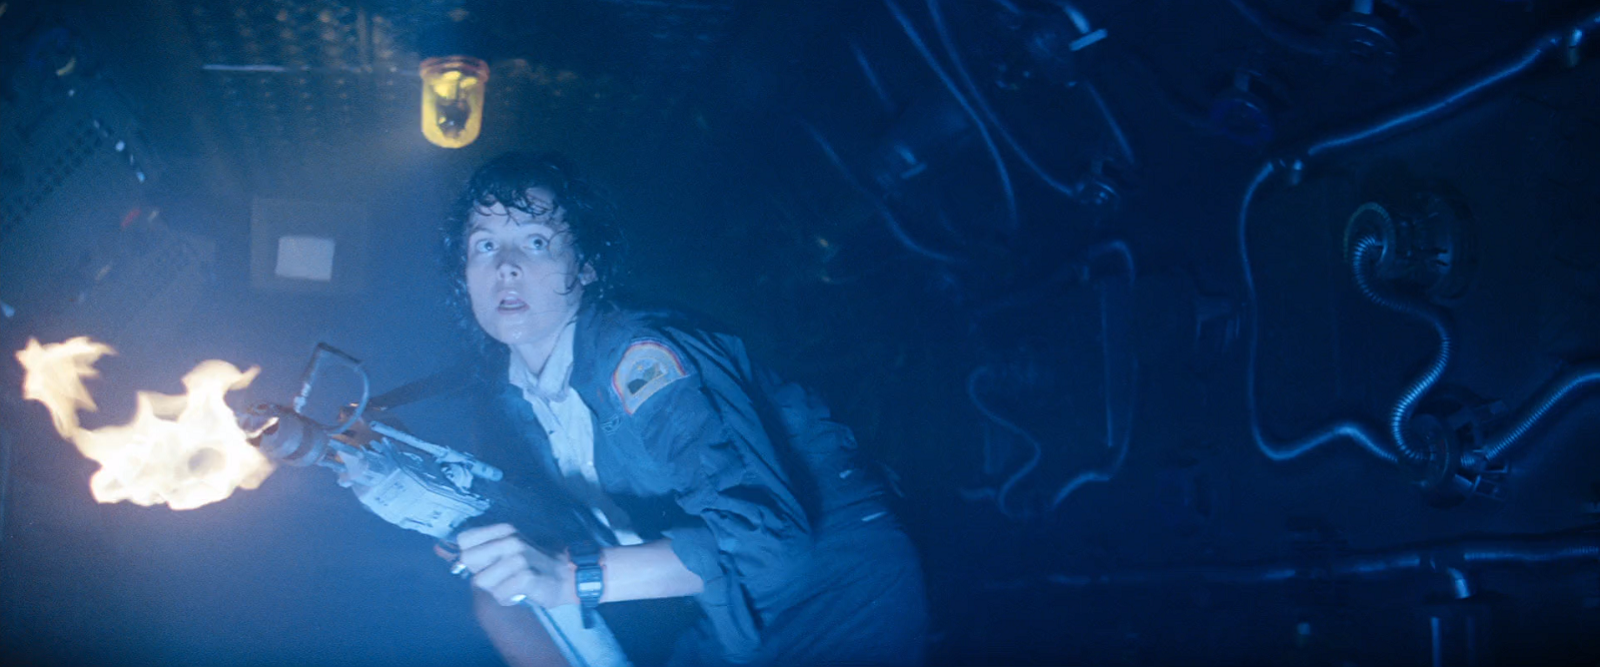 Ellen Ripley holding a flamethrower and walking cautiously down a corridor of a spaceship